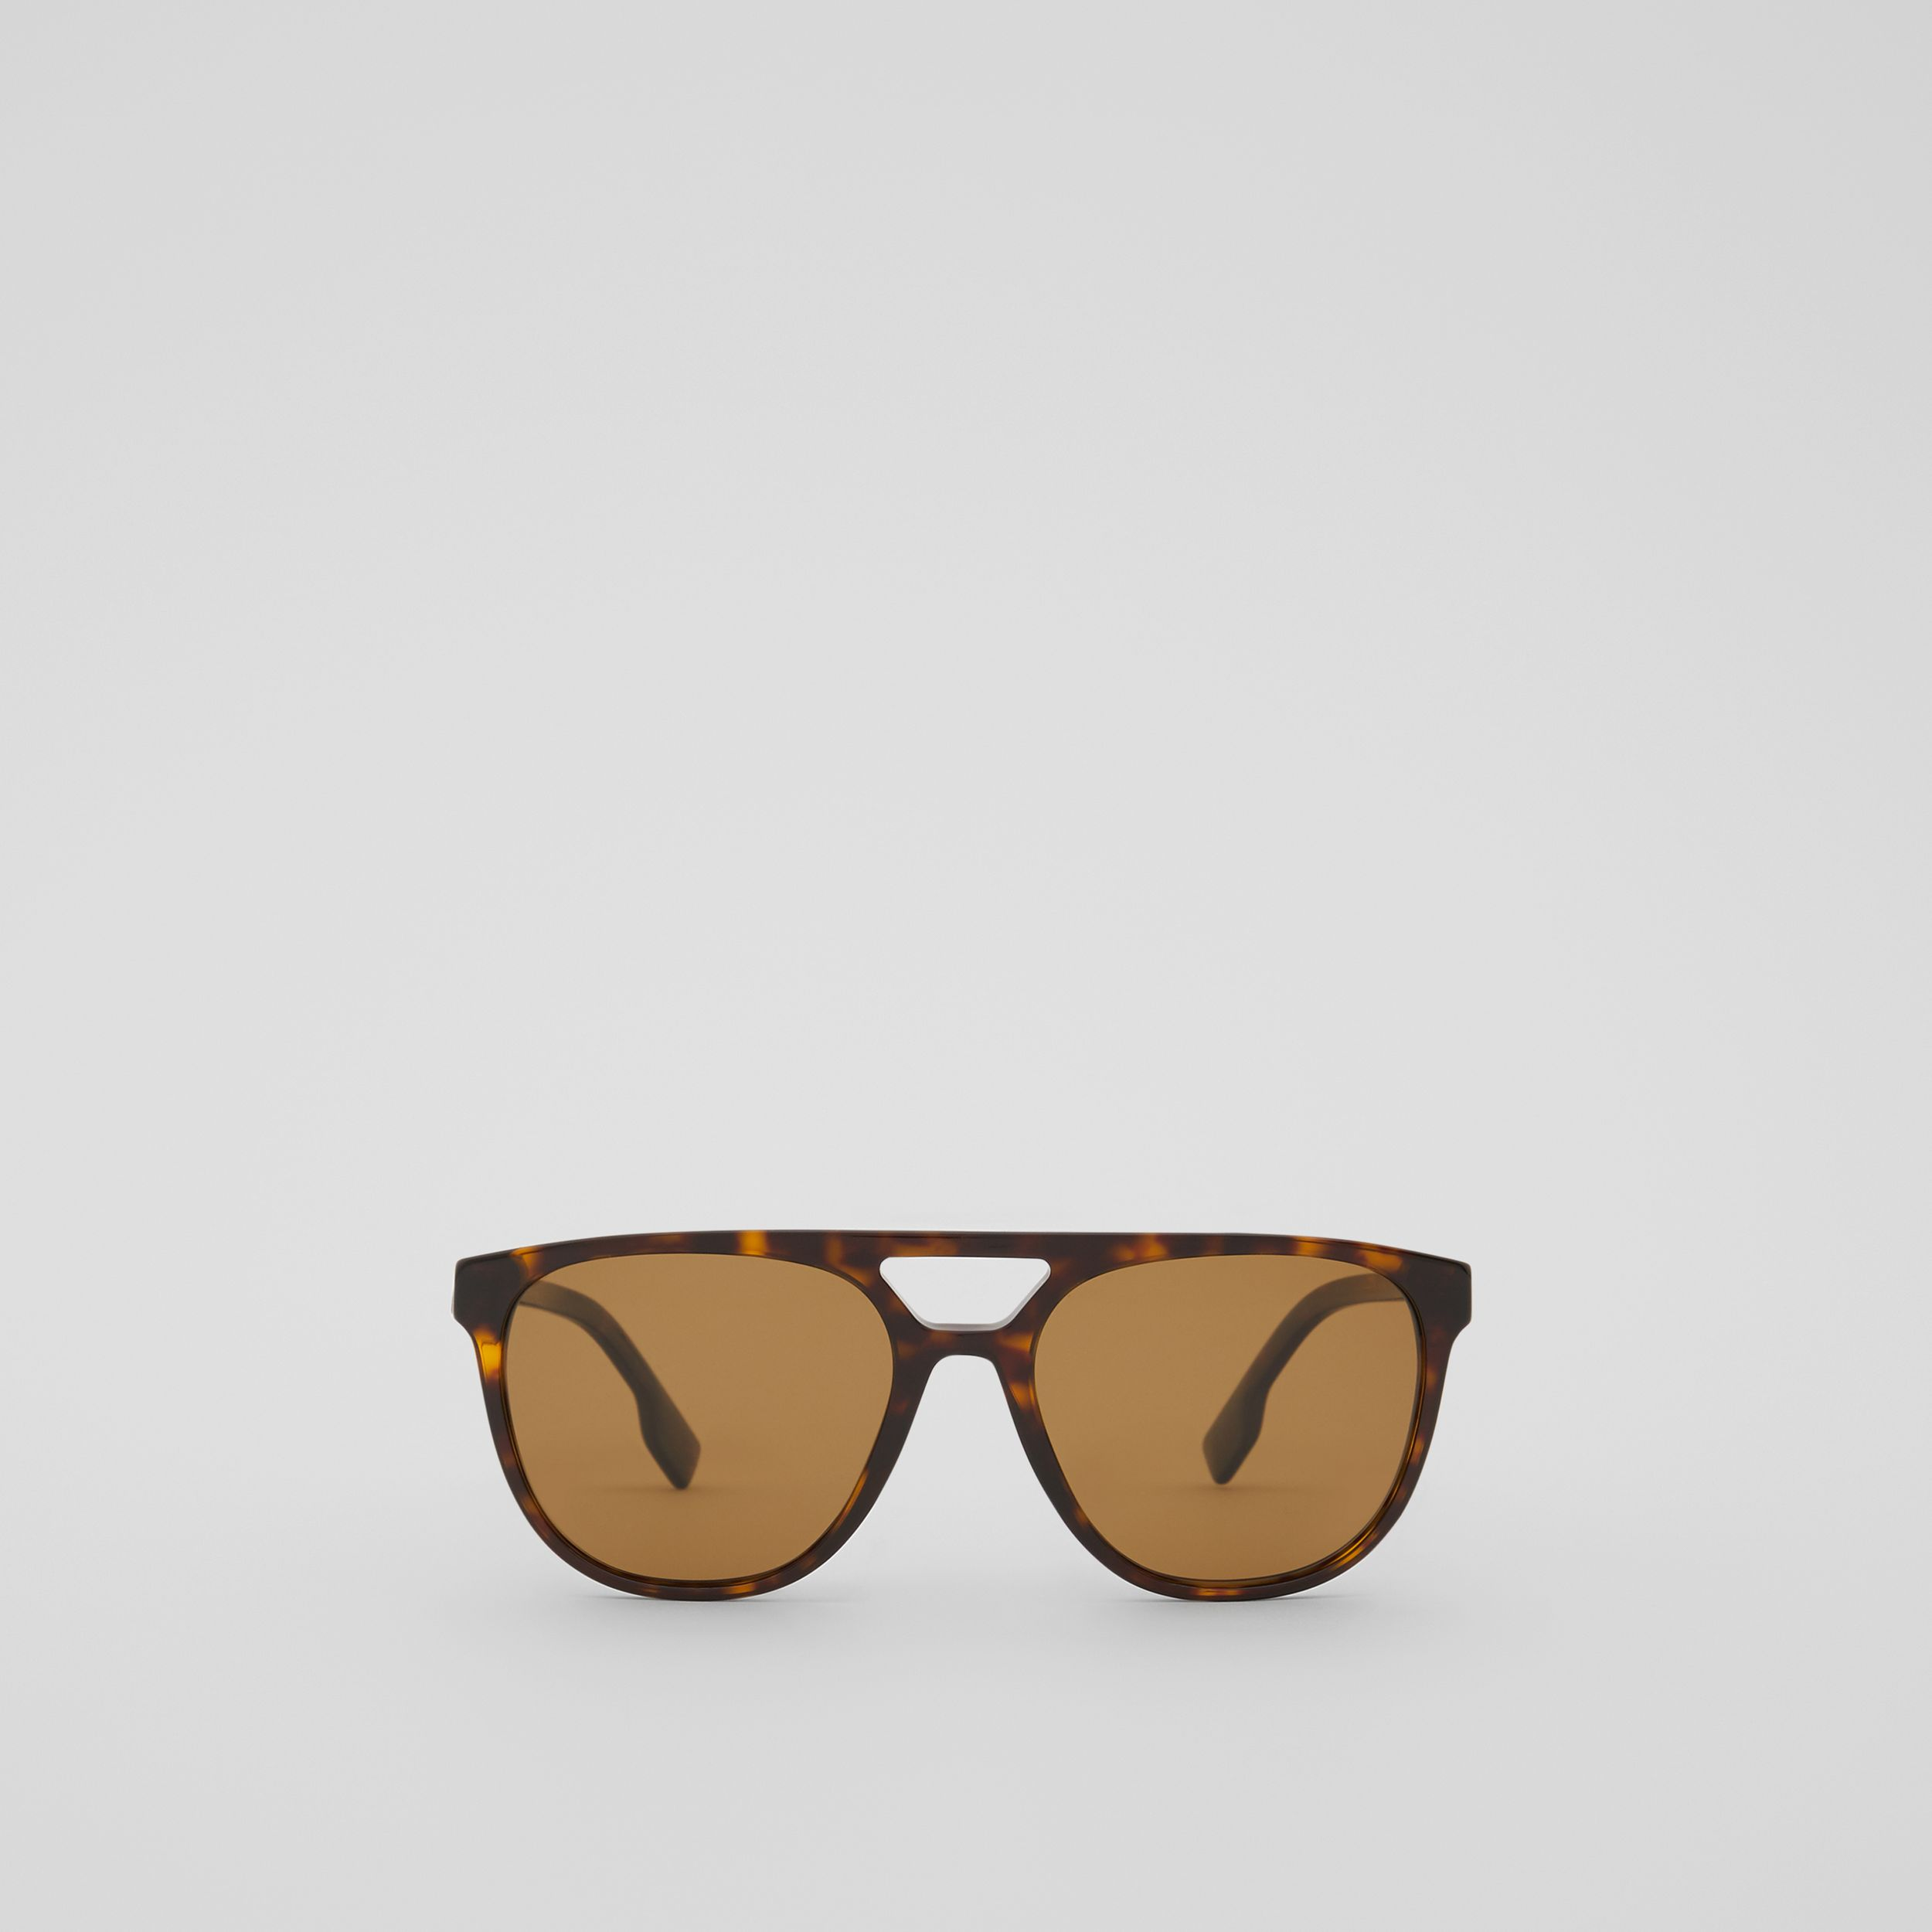 Navigator Sunglasses in Tortoiseshell - Men | Burberry - 1